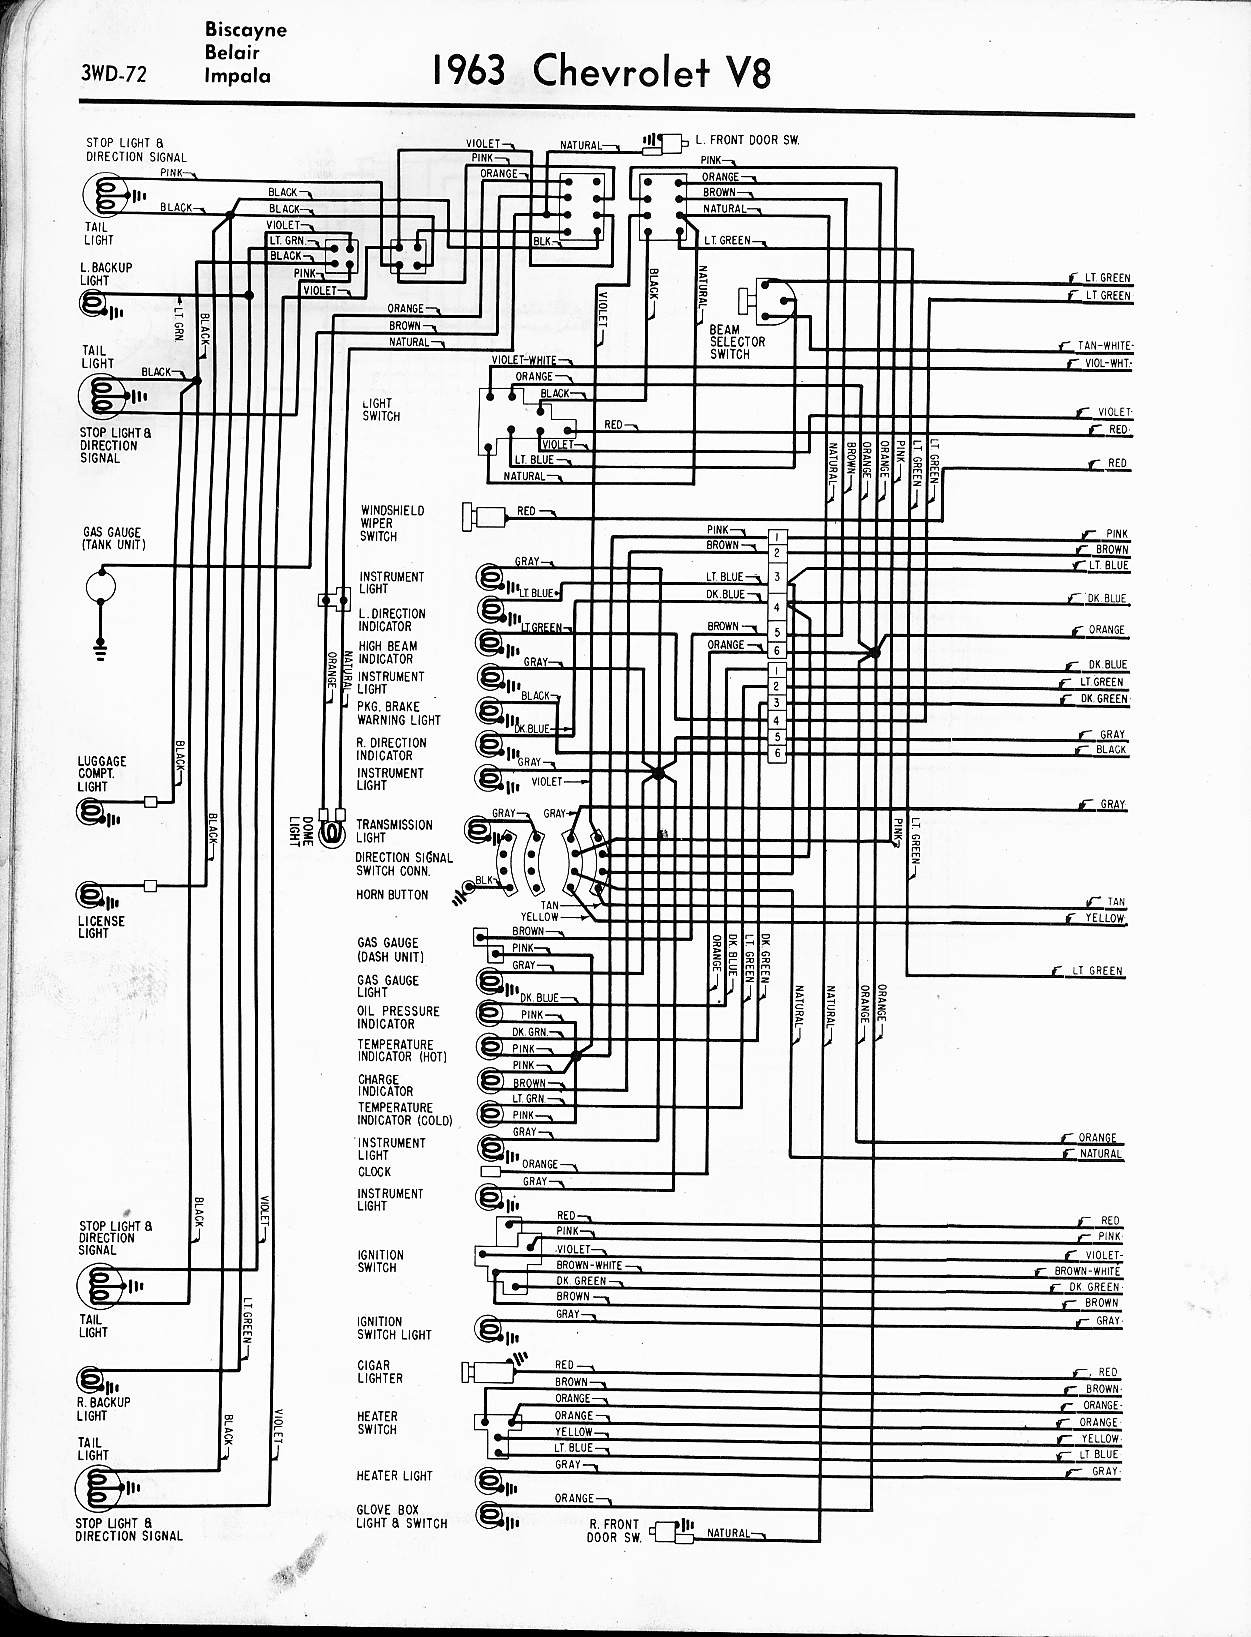 1965 Chevy C10 Wiring Diagram Elegant | Wiring Diagram Image